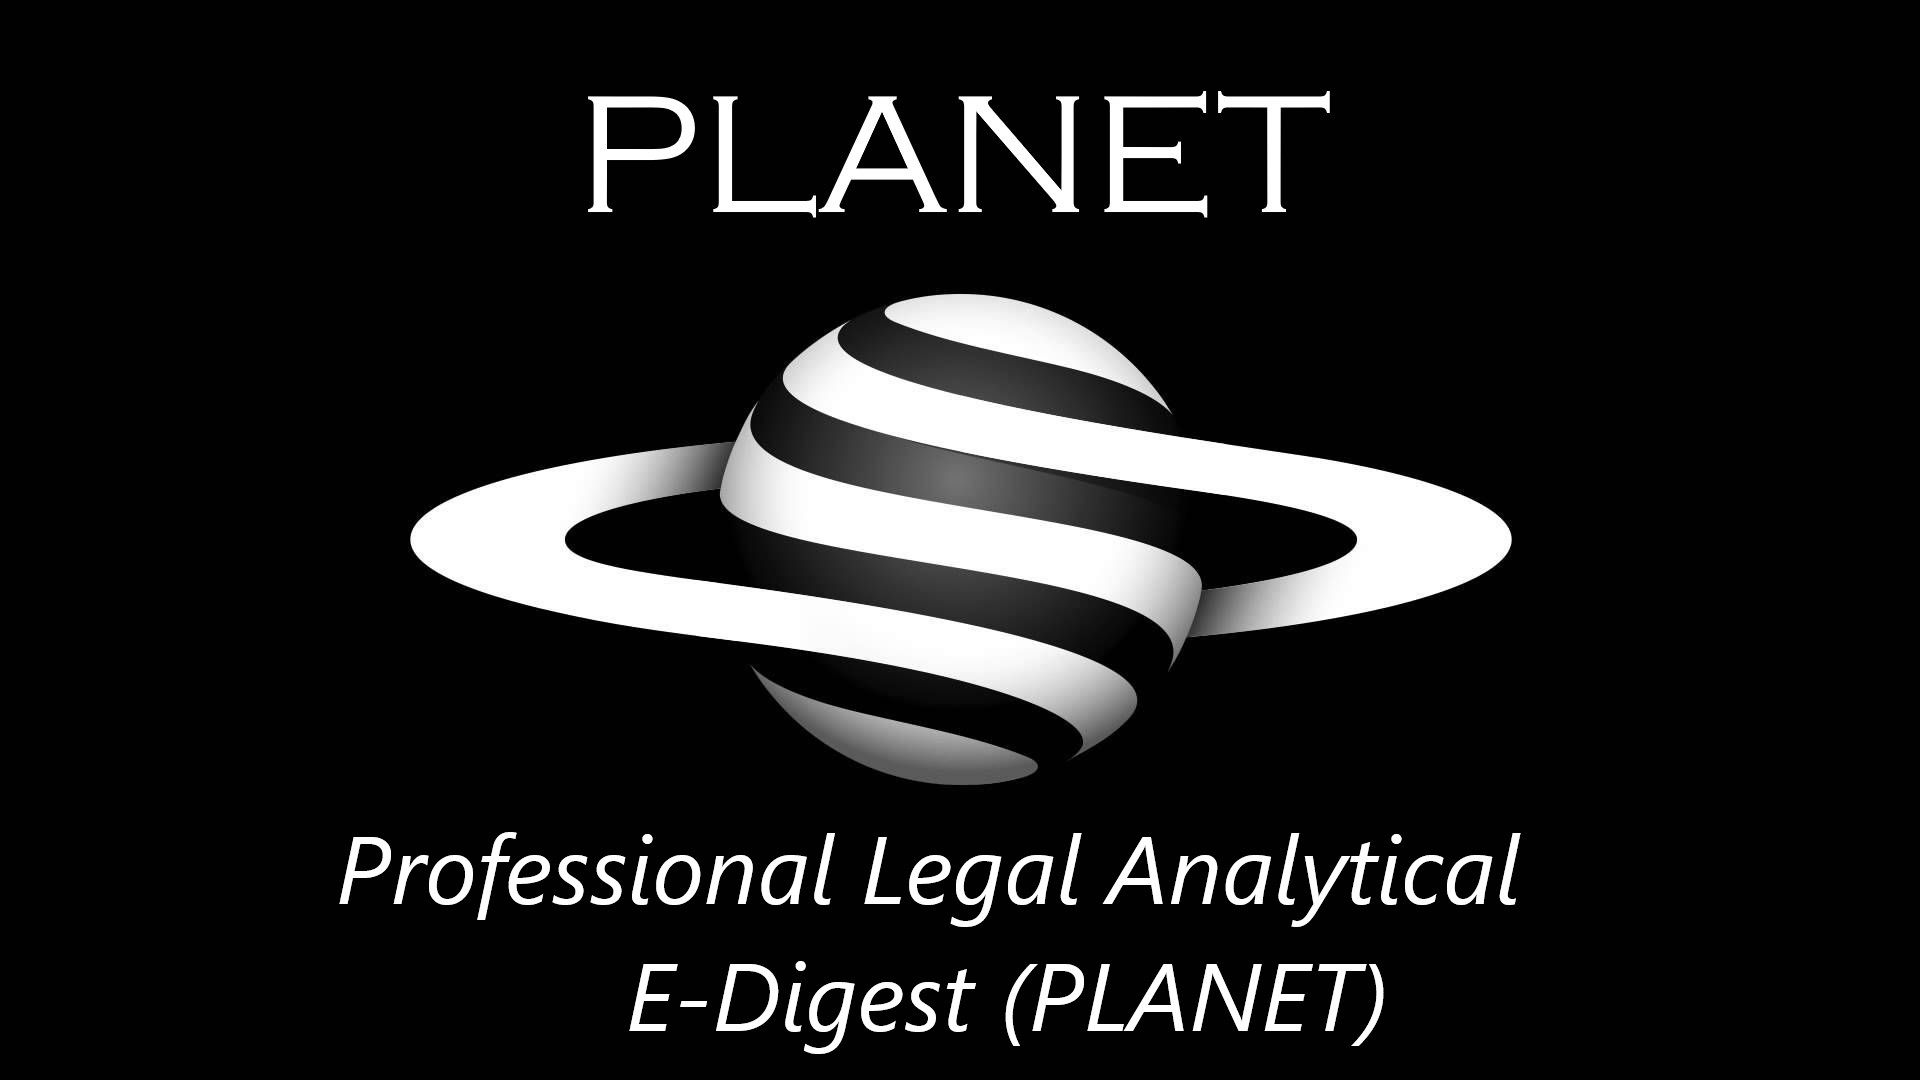 PLANET – Professional Legal Analytical E-Digest